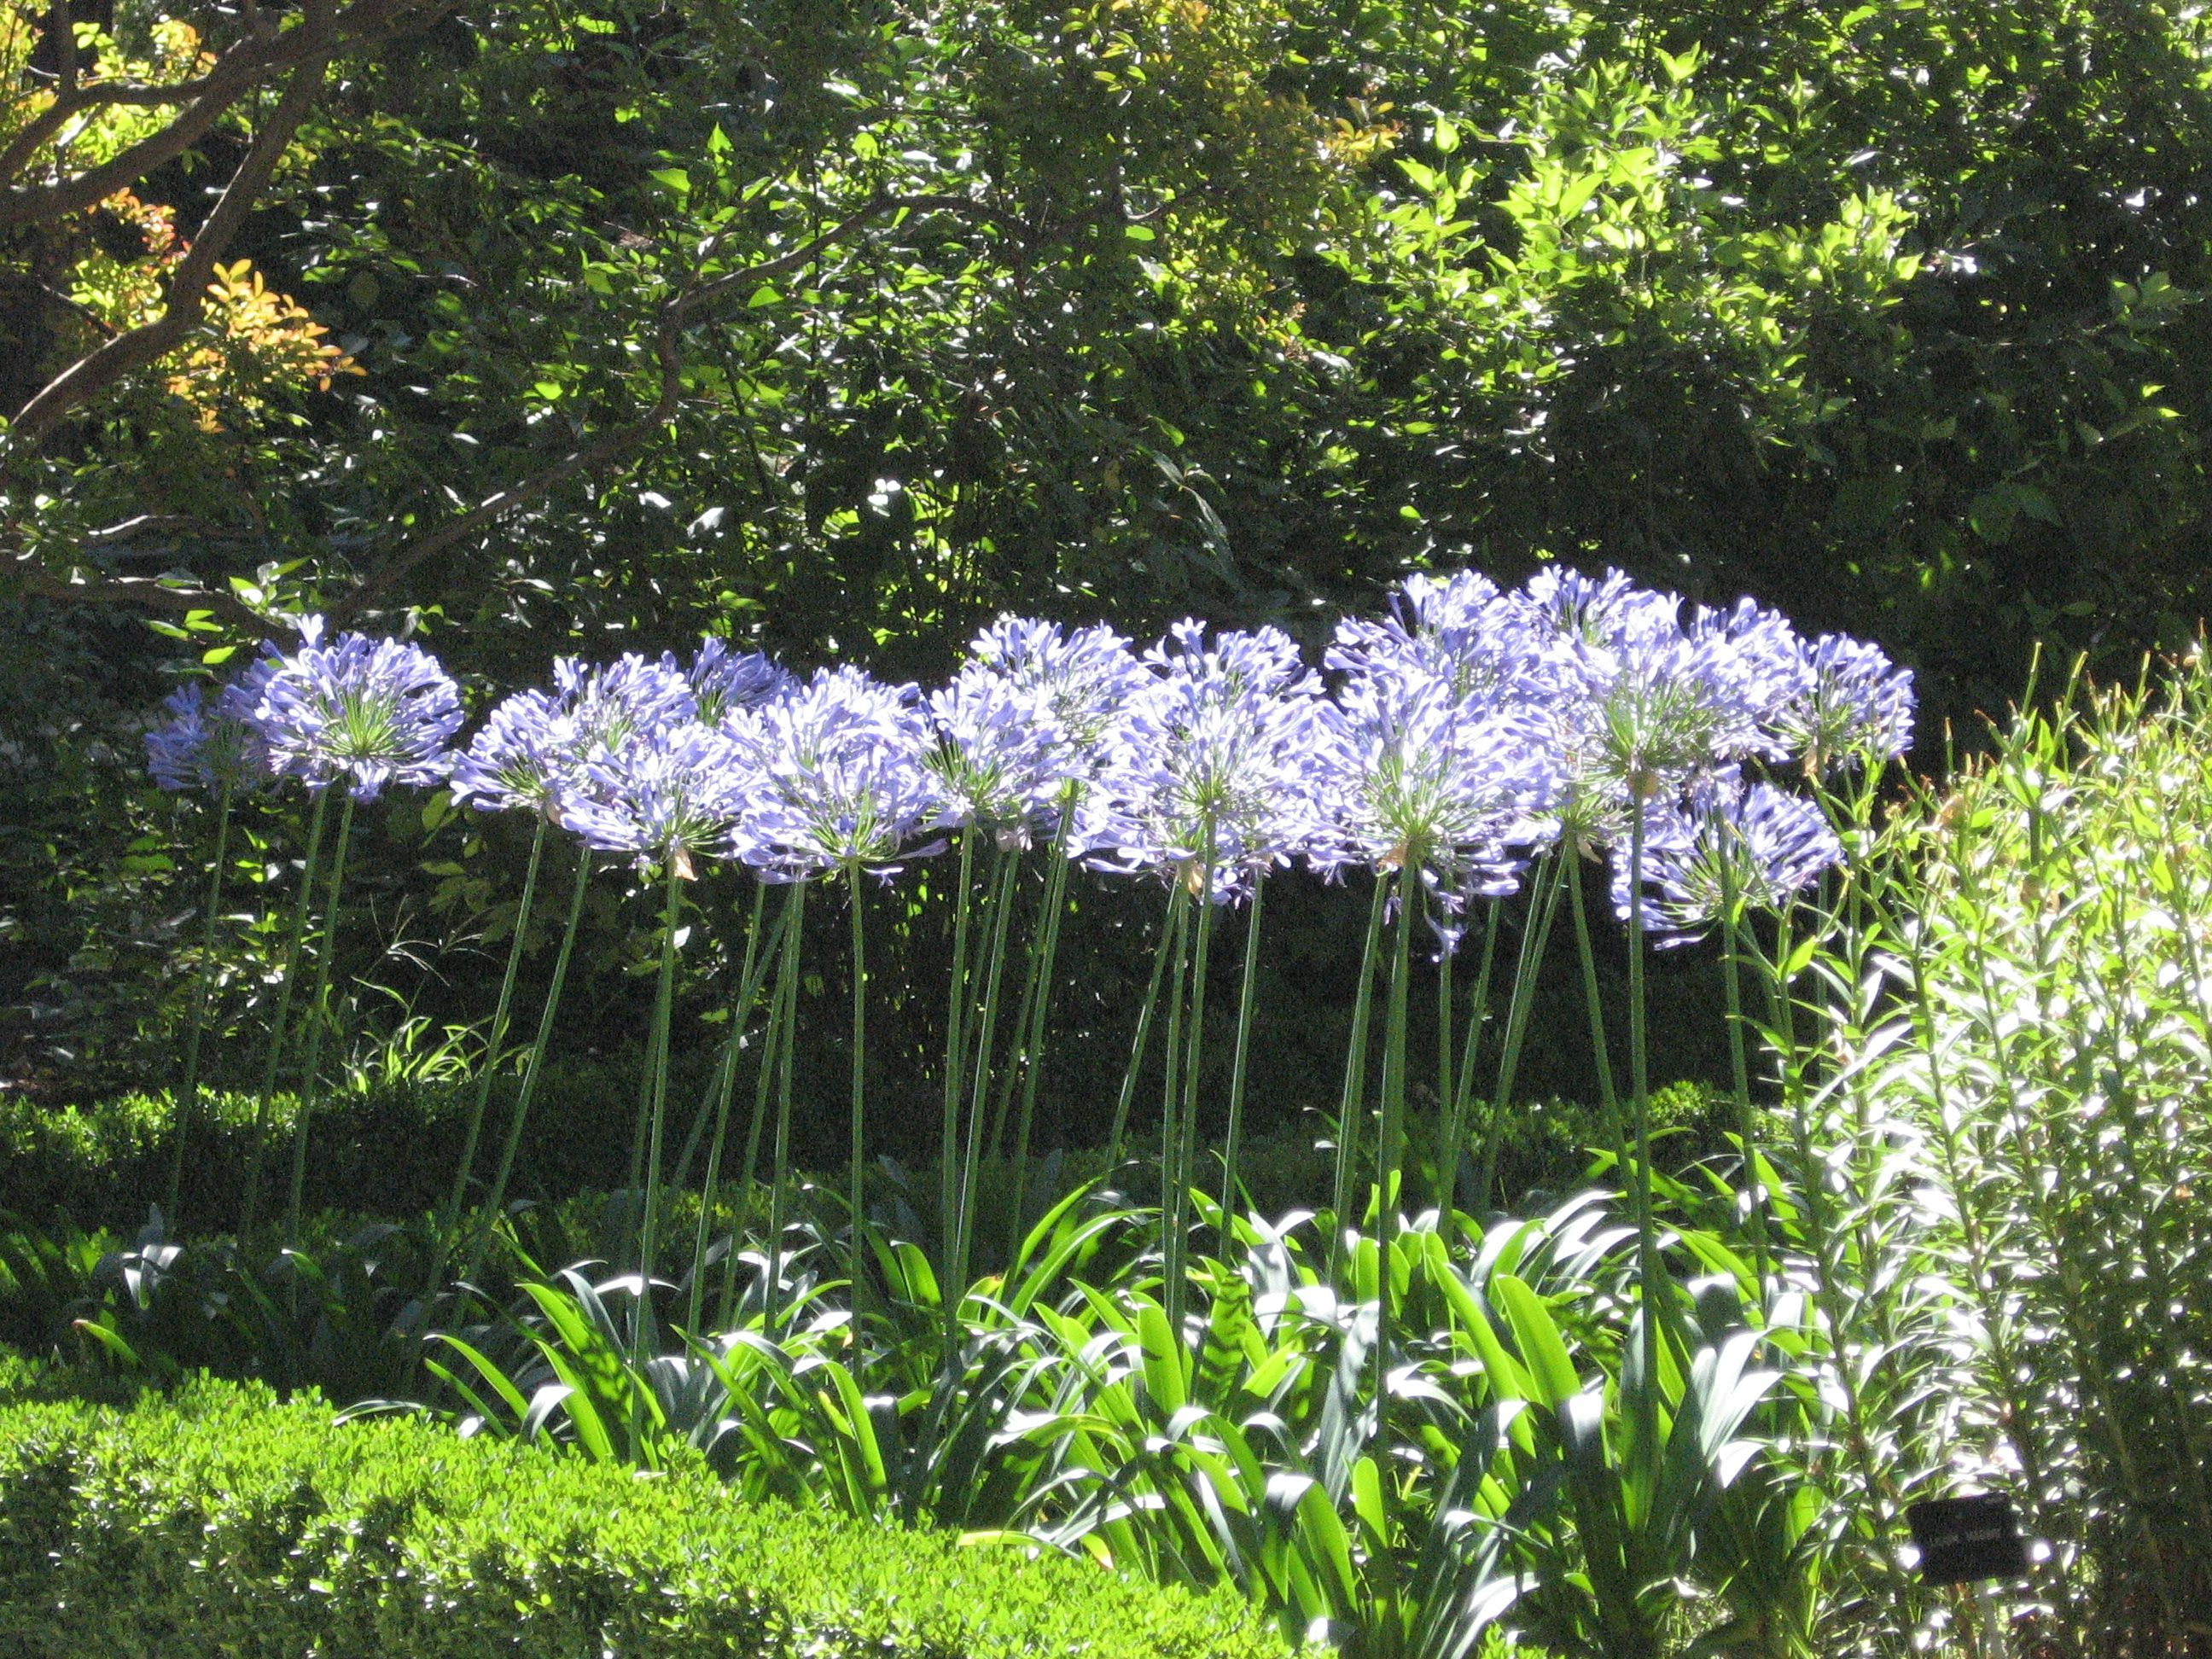 Agapanthus africanus storm cloud blue lily of the nile more agapanthus this time agapanthus africanus looking so jolly in the sunlight izmirmasajfo Images